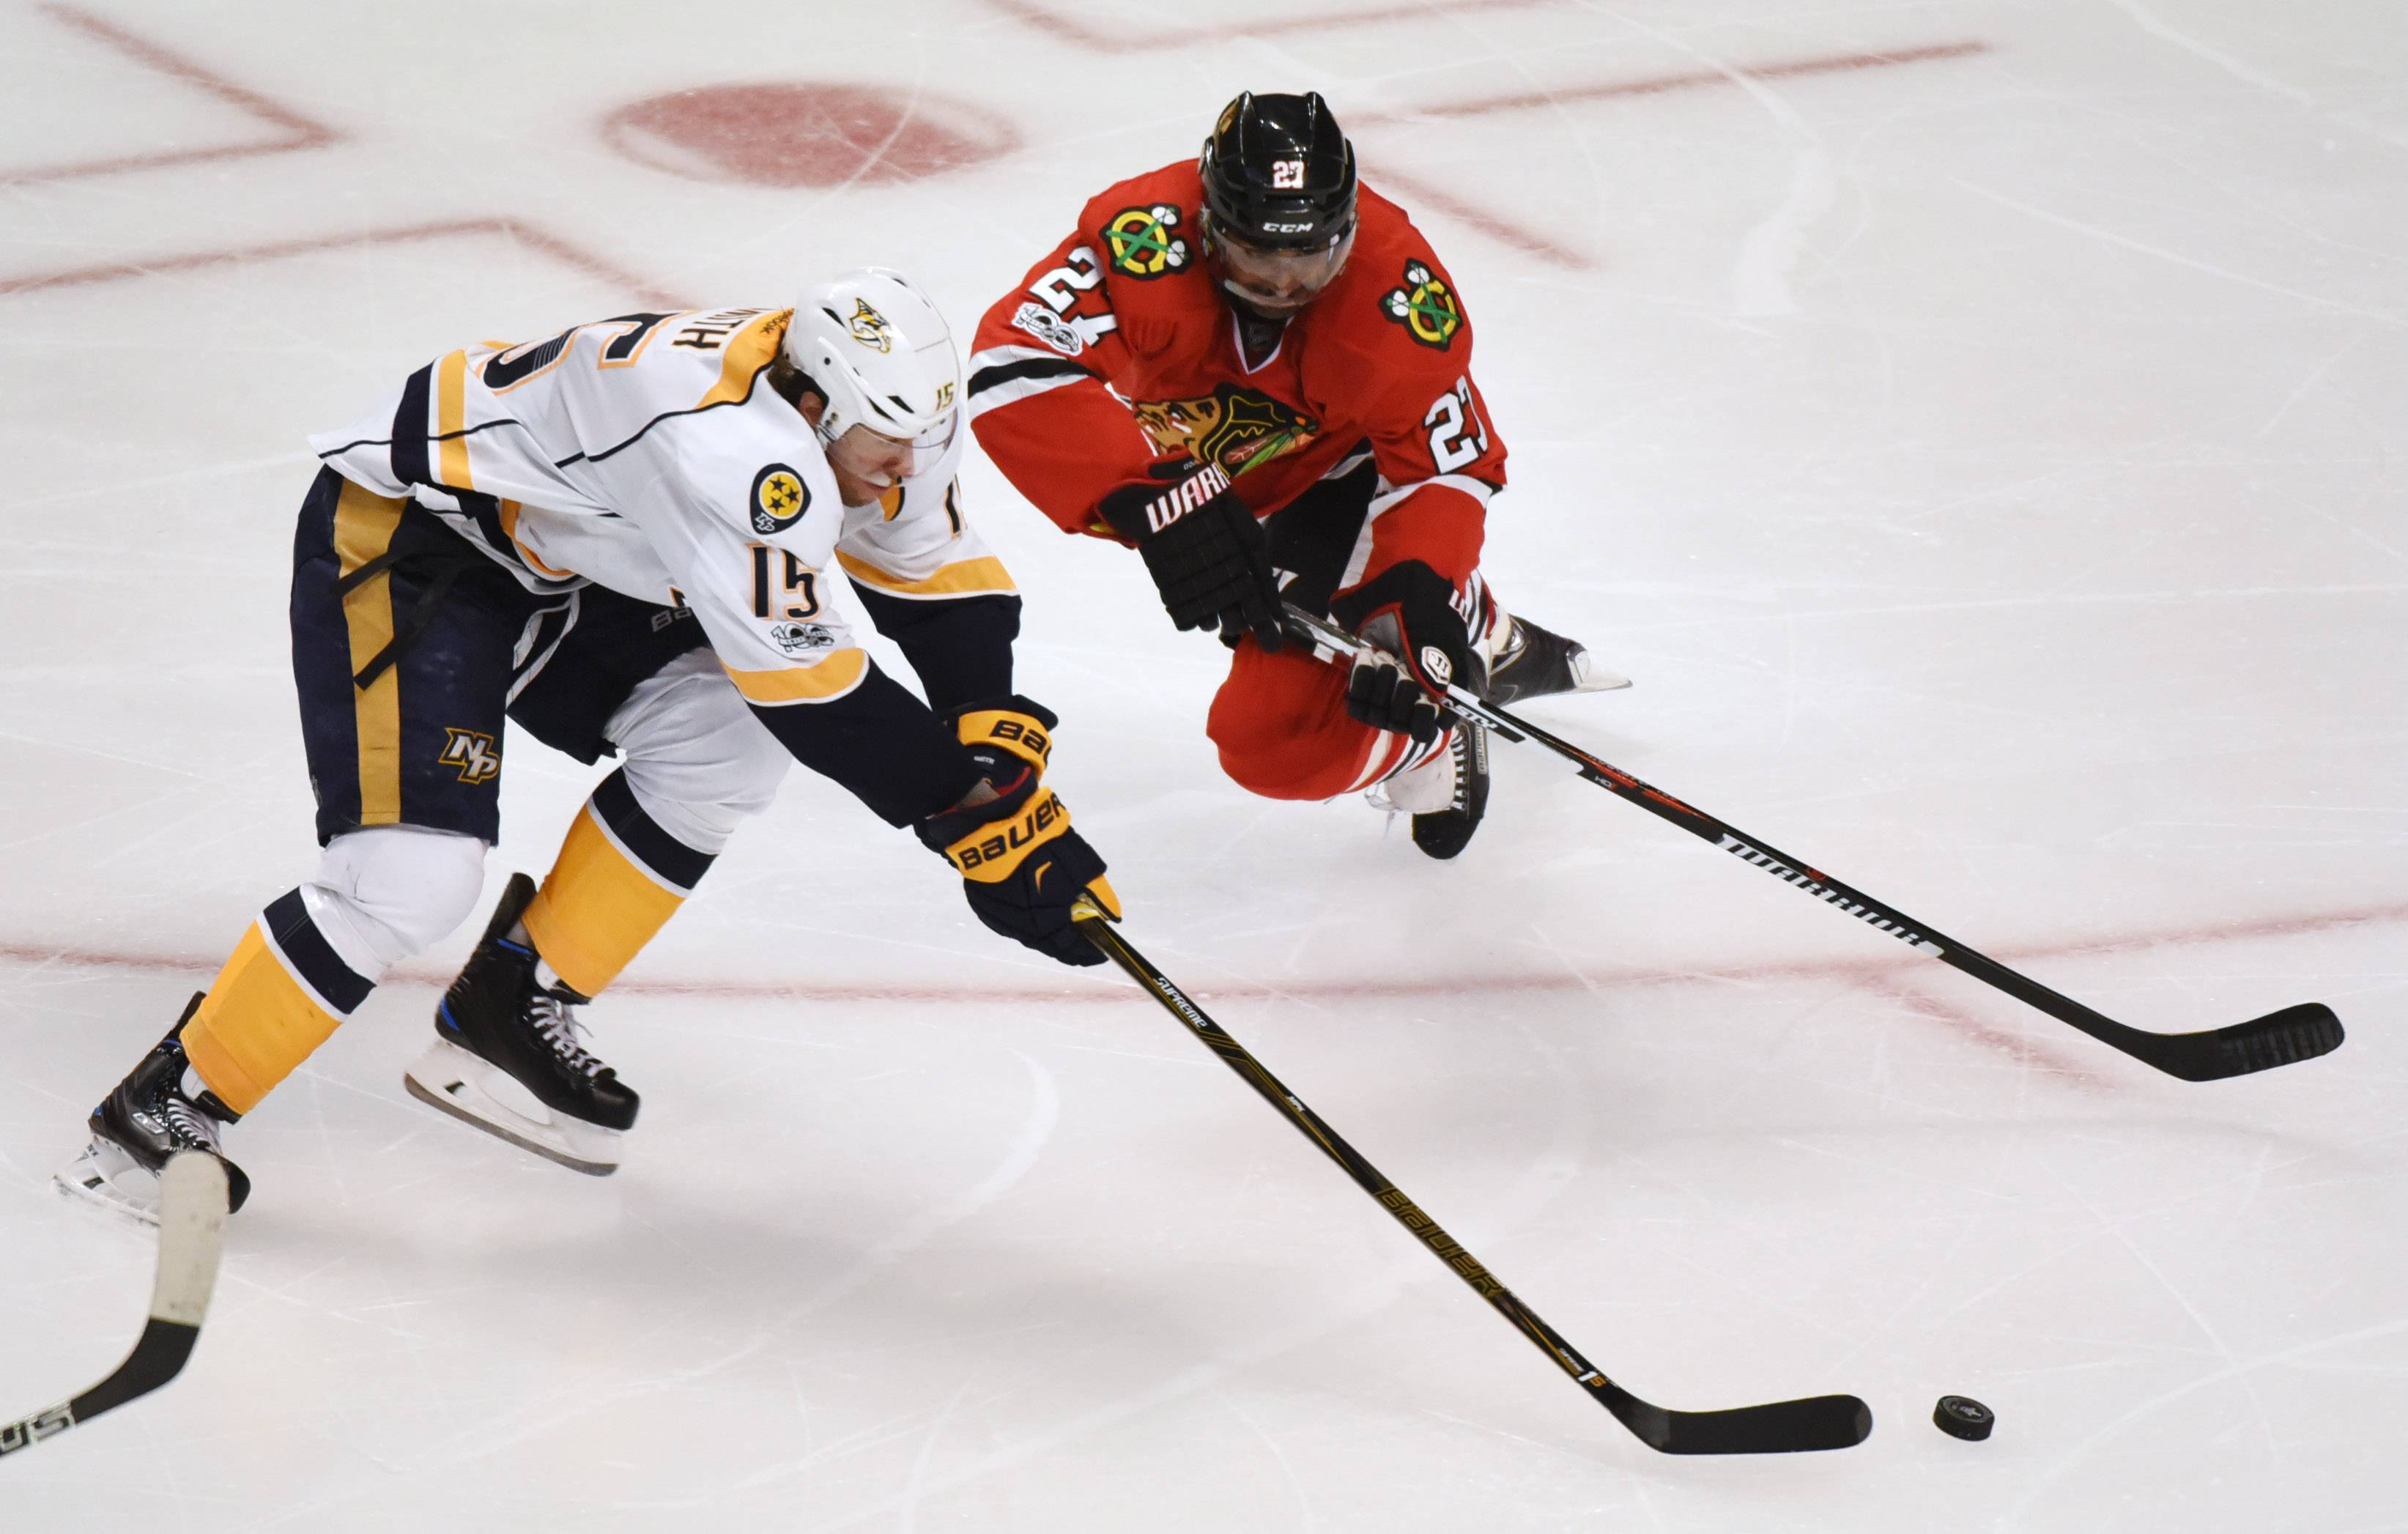 Blackhawks defenseman Johnny Oduya, right, lunges toward the puck as Nashville Predators center Craig Smith closes in during the third period of the Blackhawks' 1-0 loss in Game 1 of the playoffs. After a first-round drubbing by the Preds, there's no way the Hawks could come back with Duncan Keith, Brent Seabrook, Hjalmarsson, Oduya, Brian Campbell and Trevor van Riemsdyk.